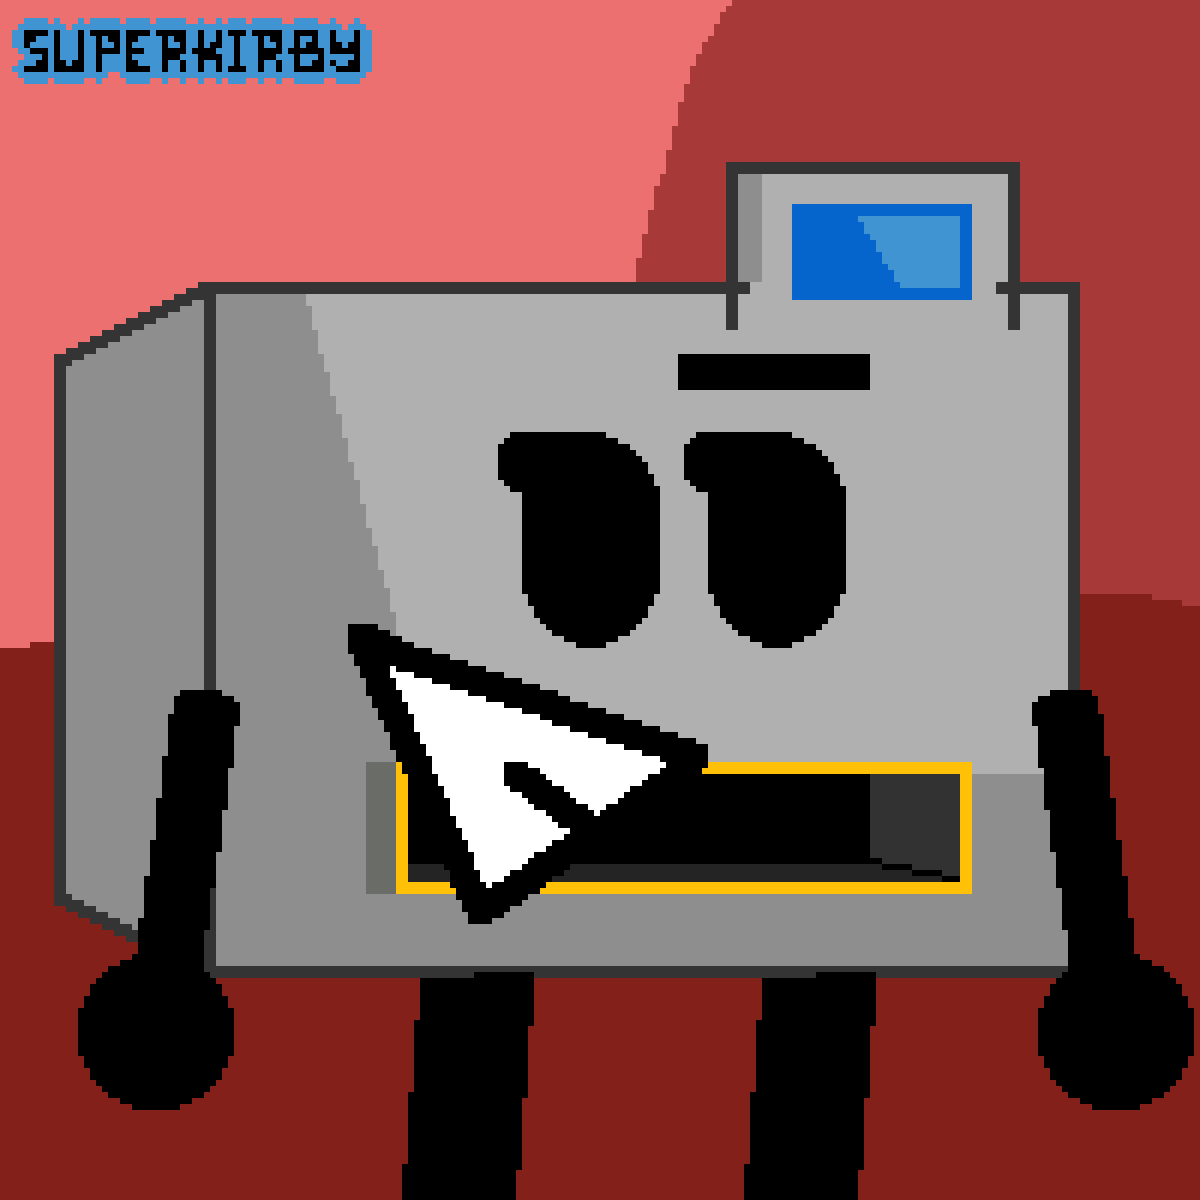 [Object Terror] Printer by SuperKirby